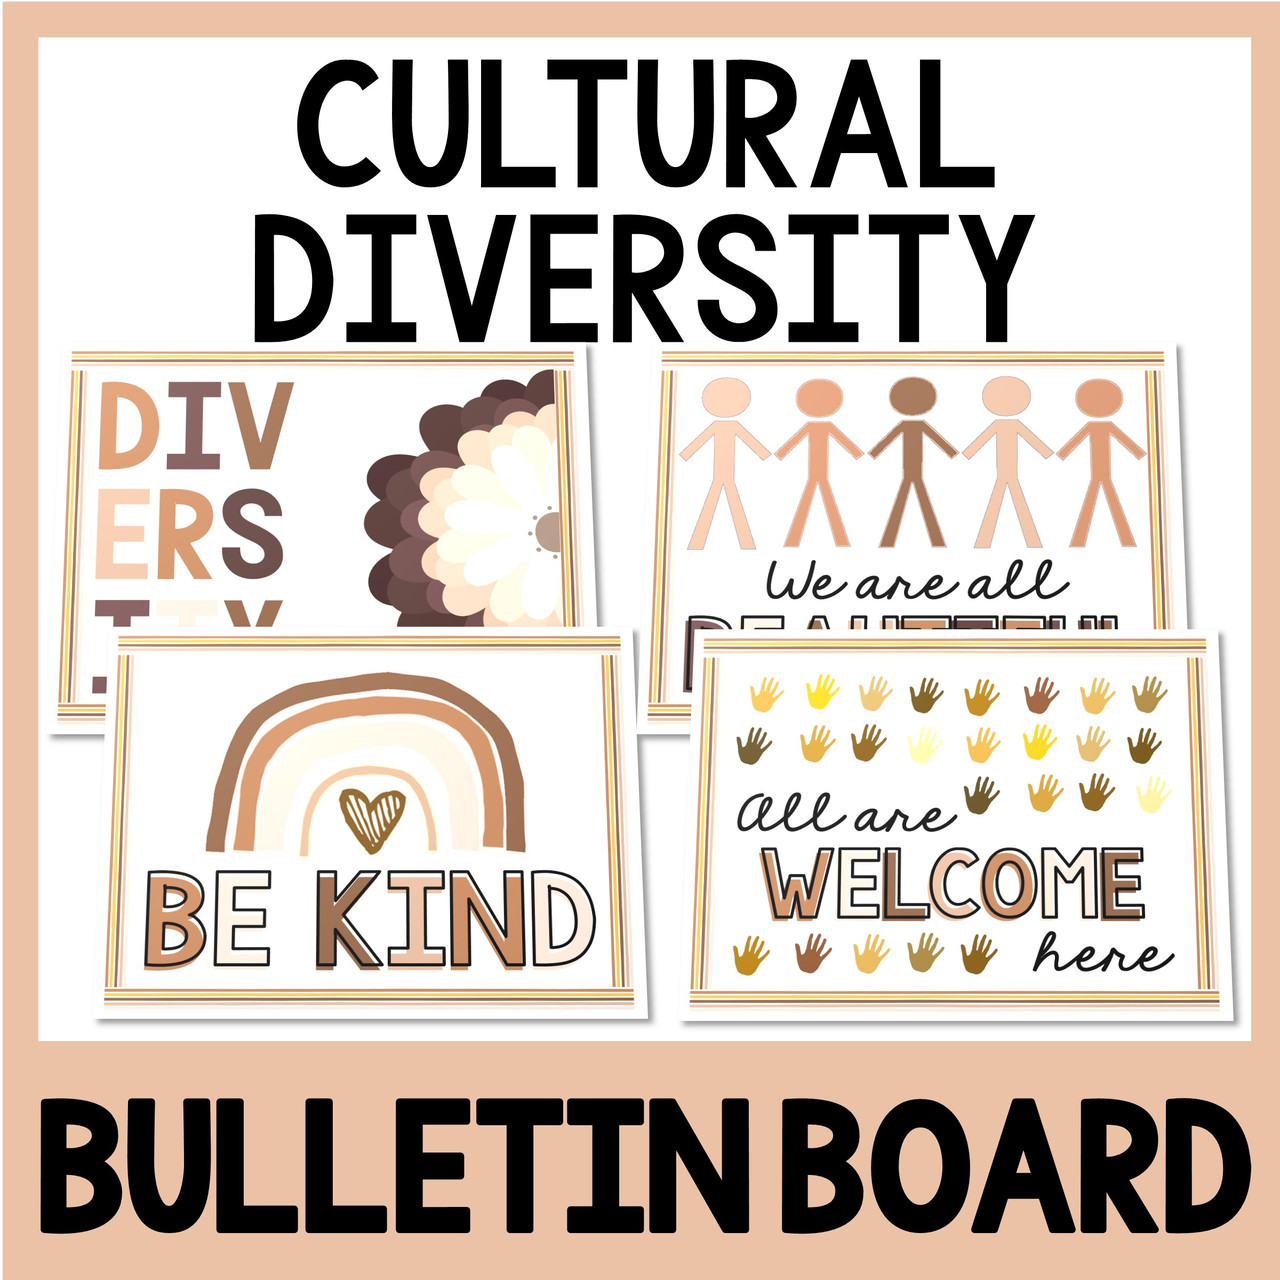 Cultural Diversity Bulletin Board - Posters - Equality